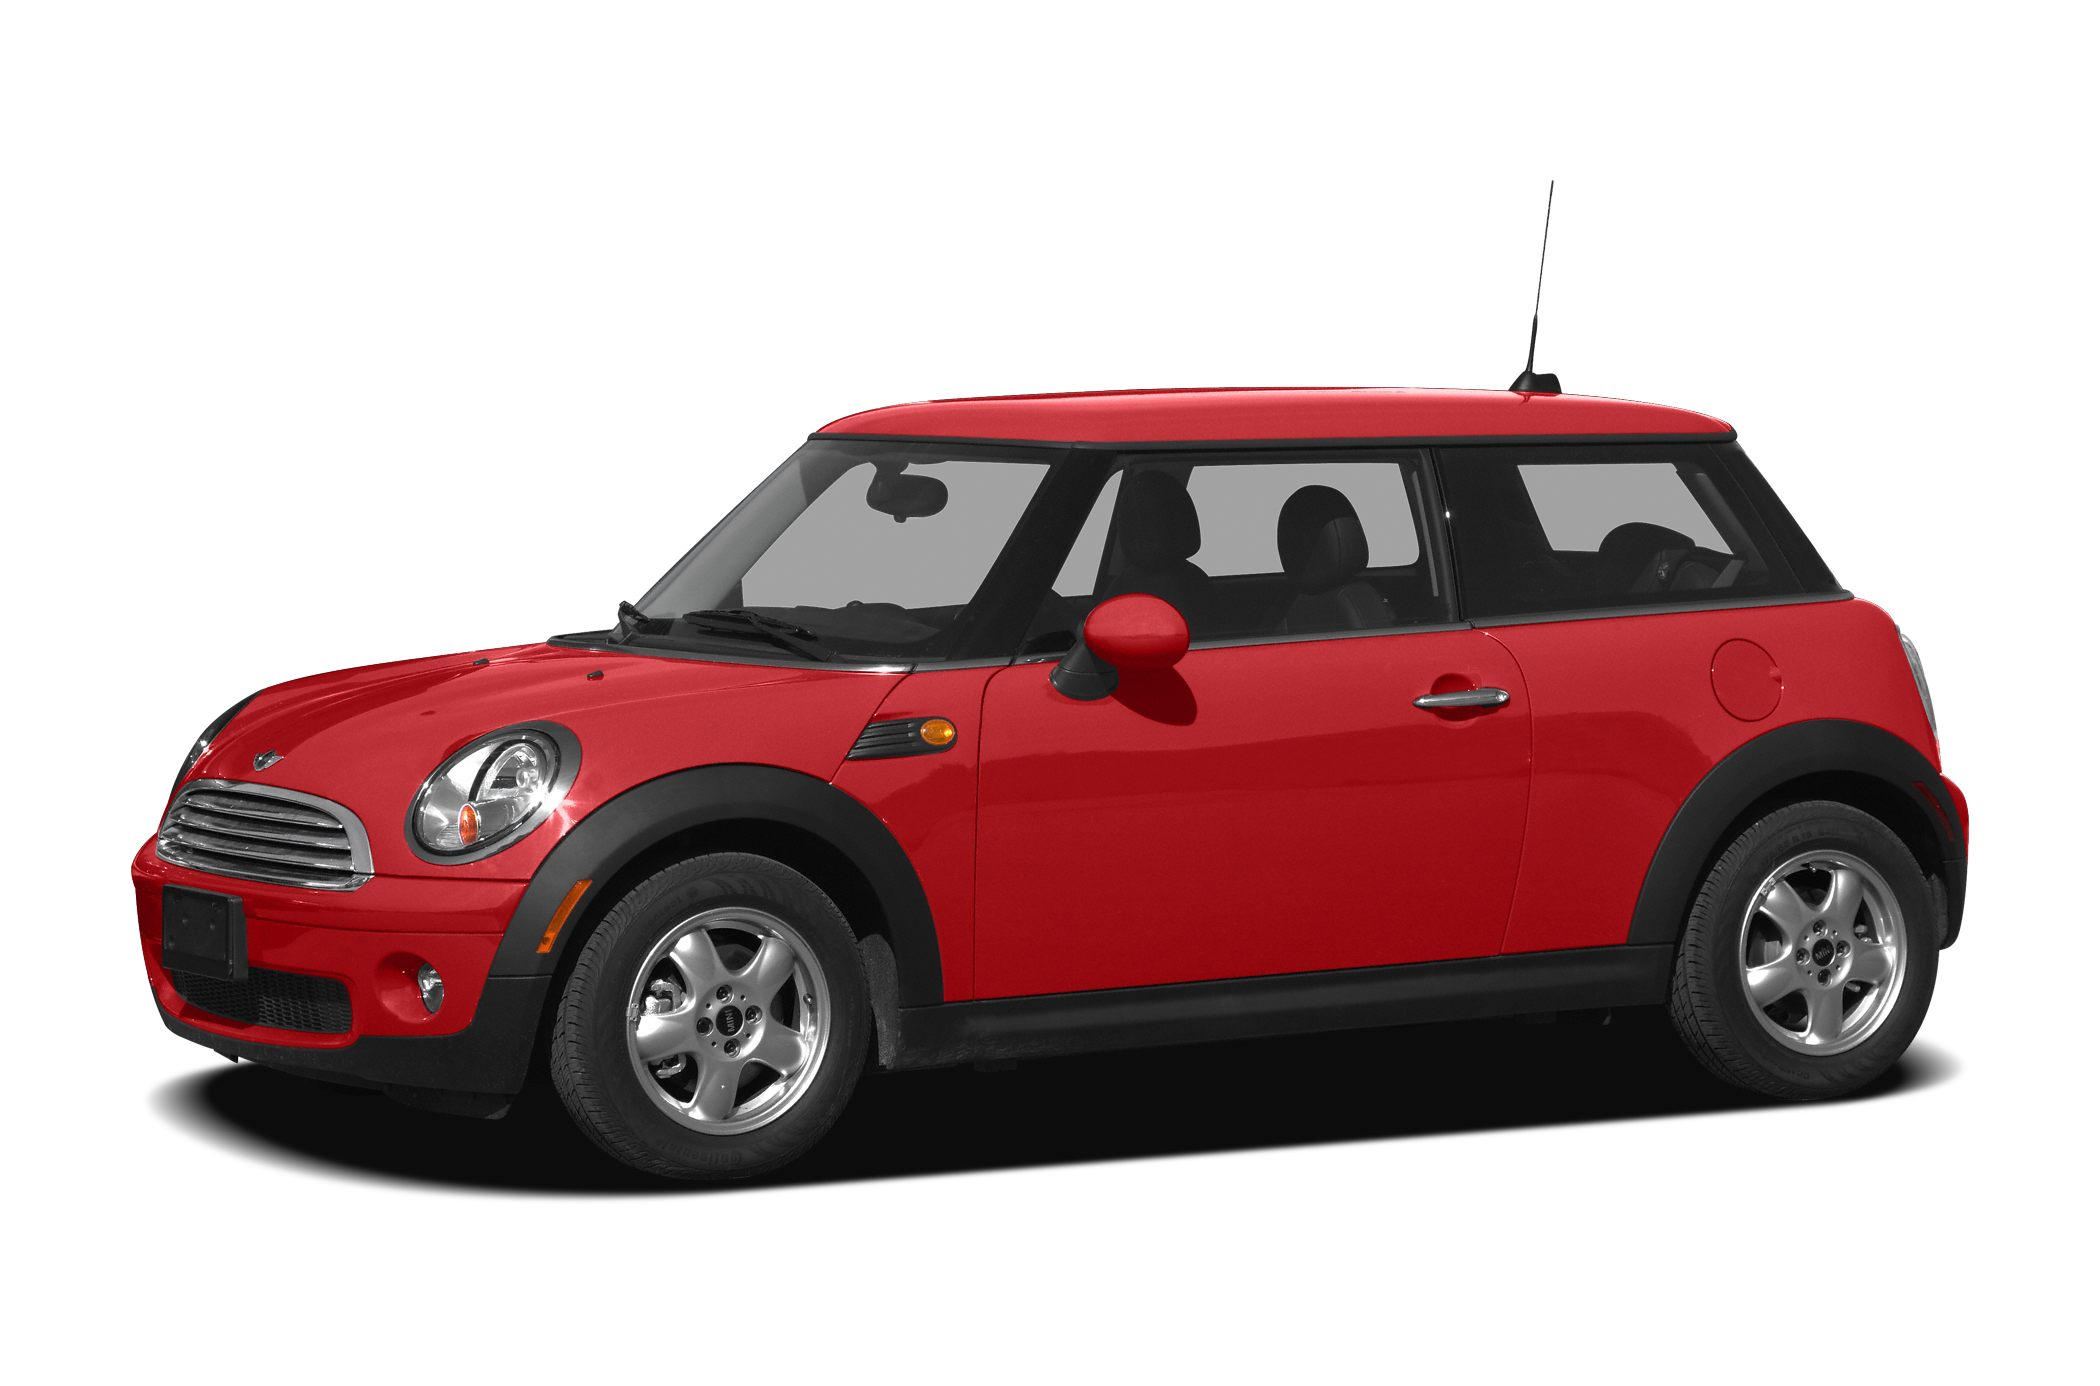 2009 MINI Cooper Hatchback for sale in Wichita for $11,977 with 81,688 miles